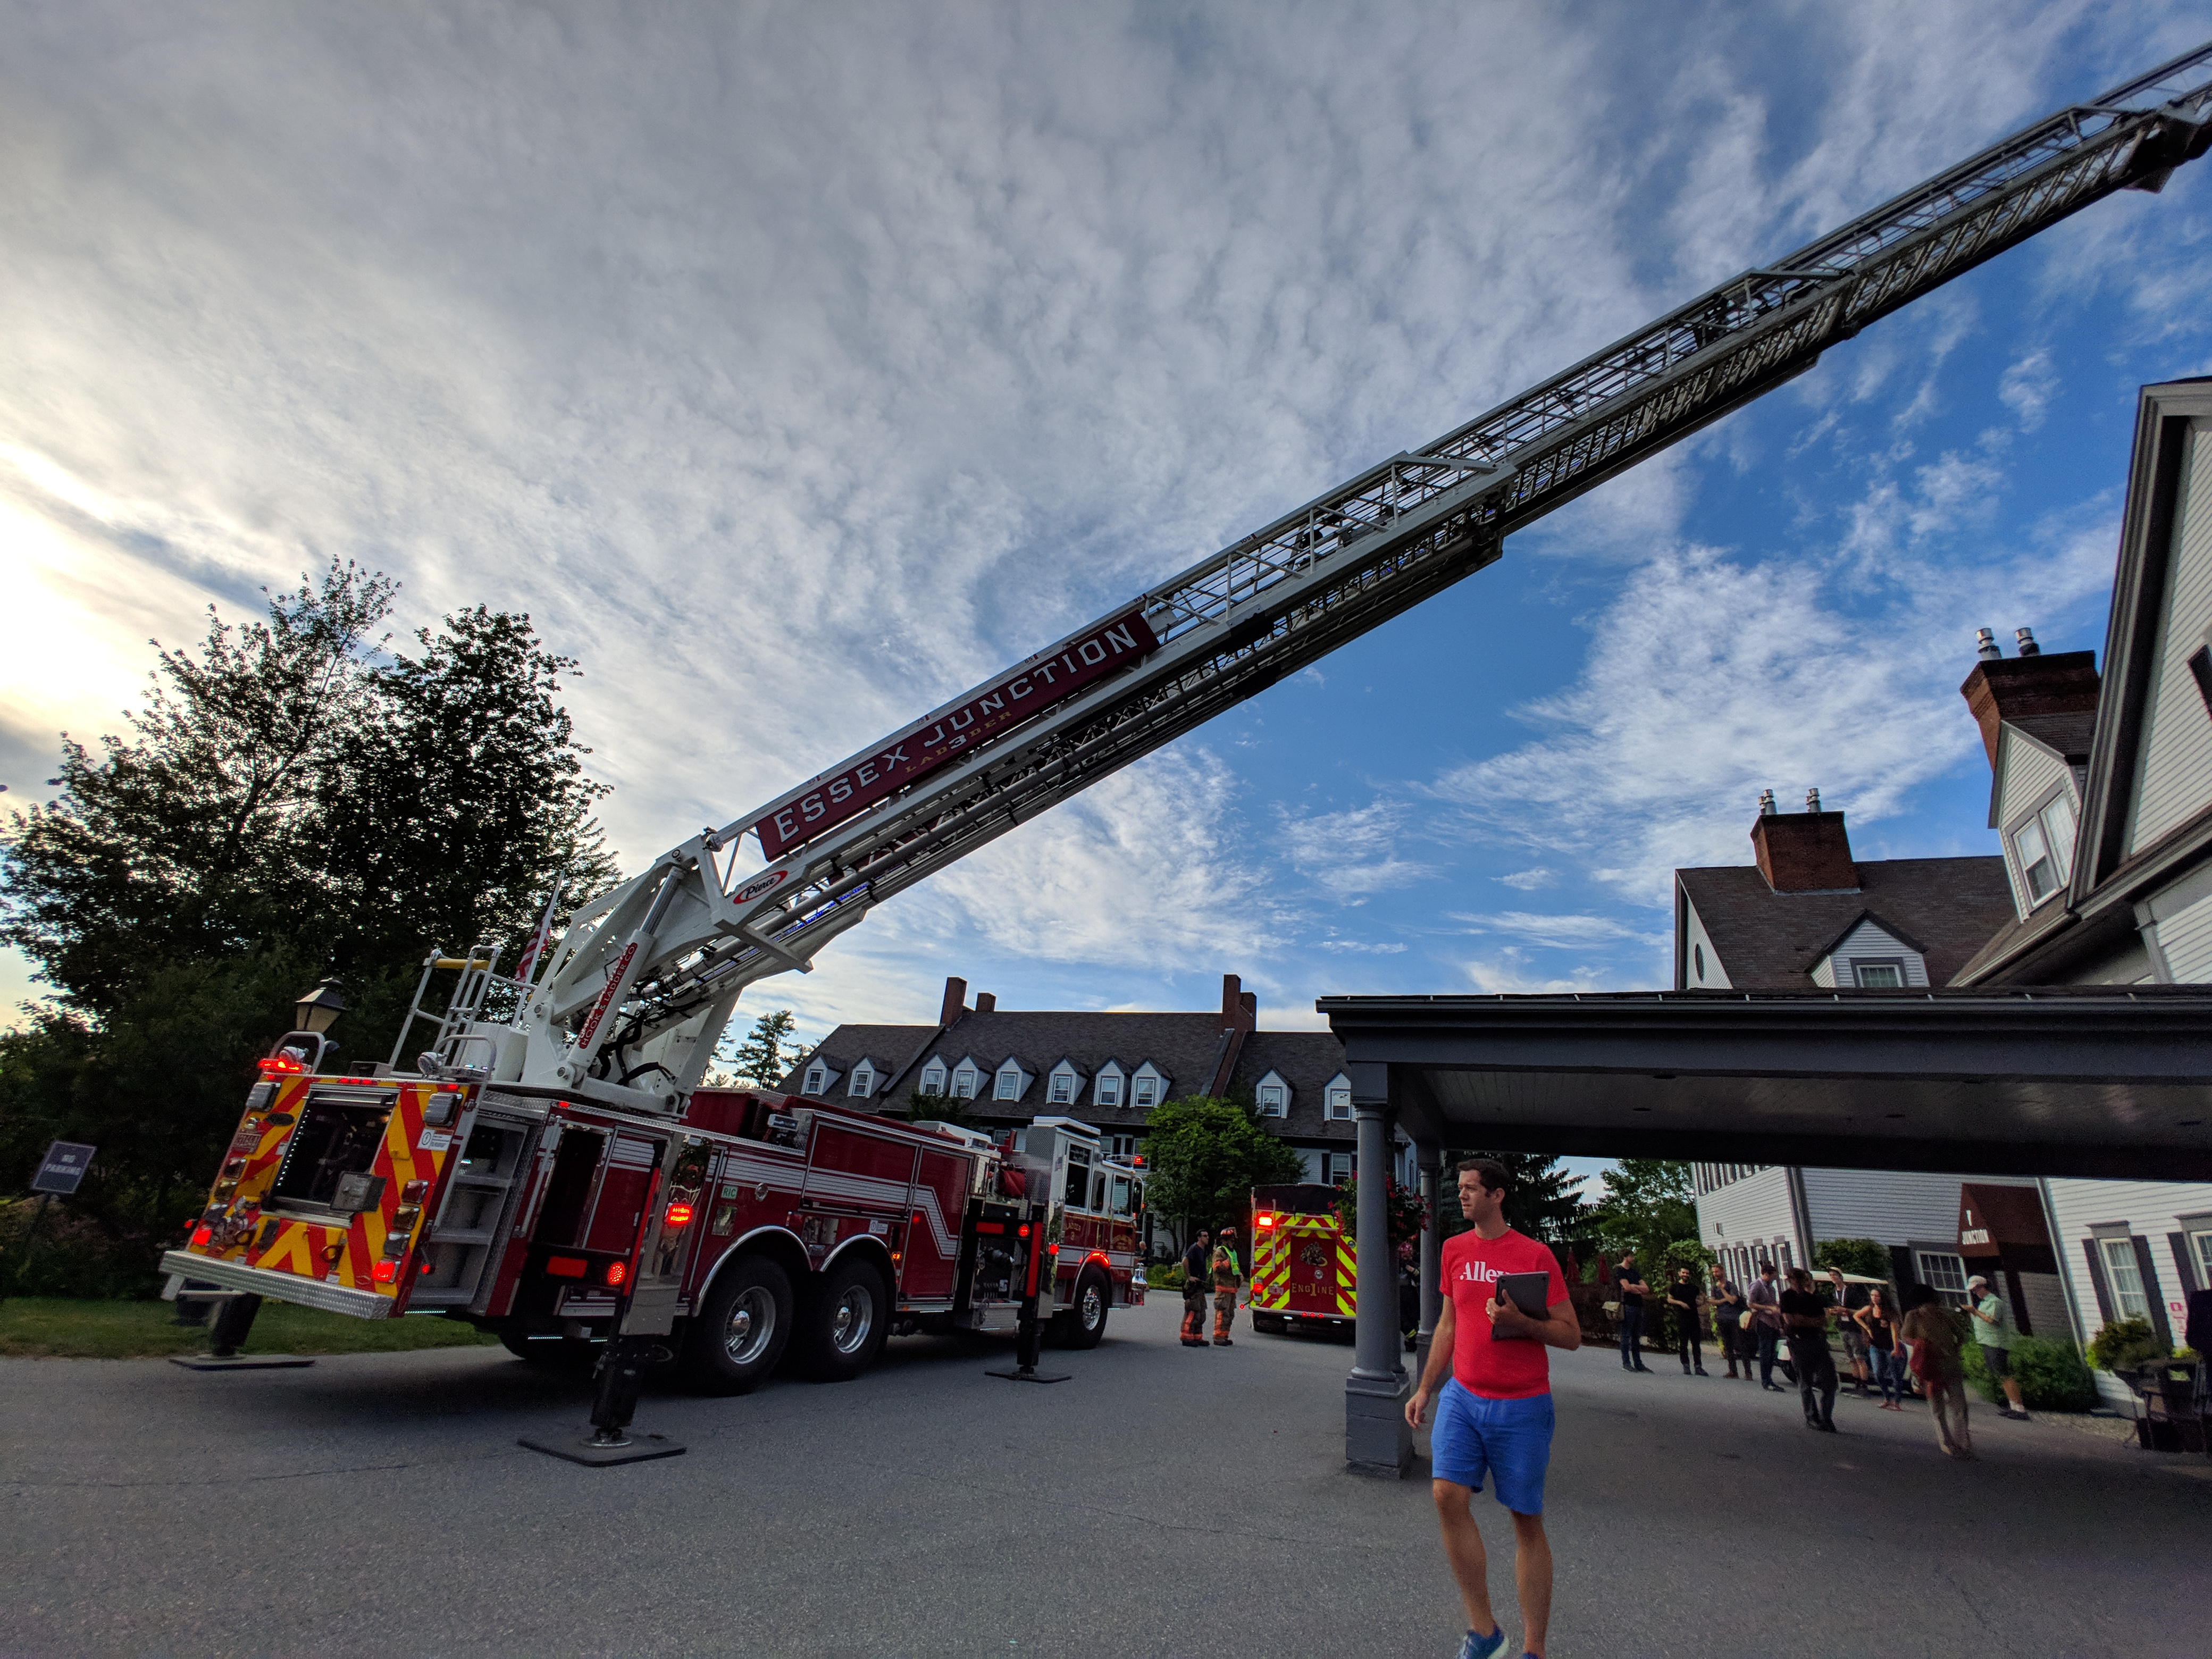 A fire truck with a long ladder fully extended to reach the top of the building next door while a White man with a red Alley shirt and blue shorts walks in front